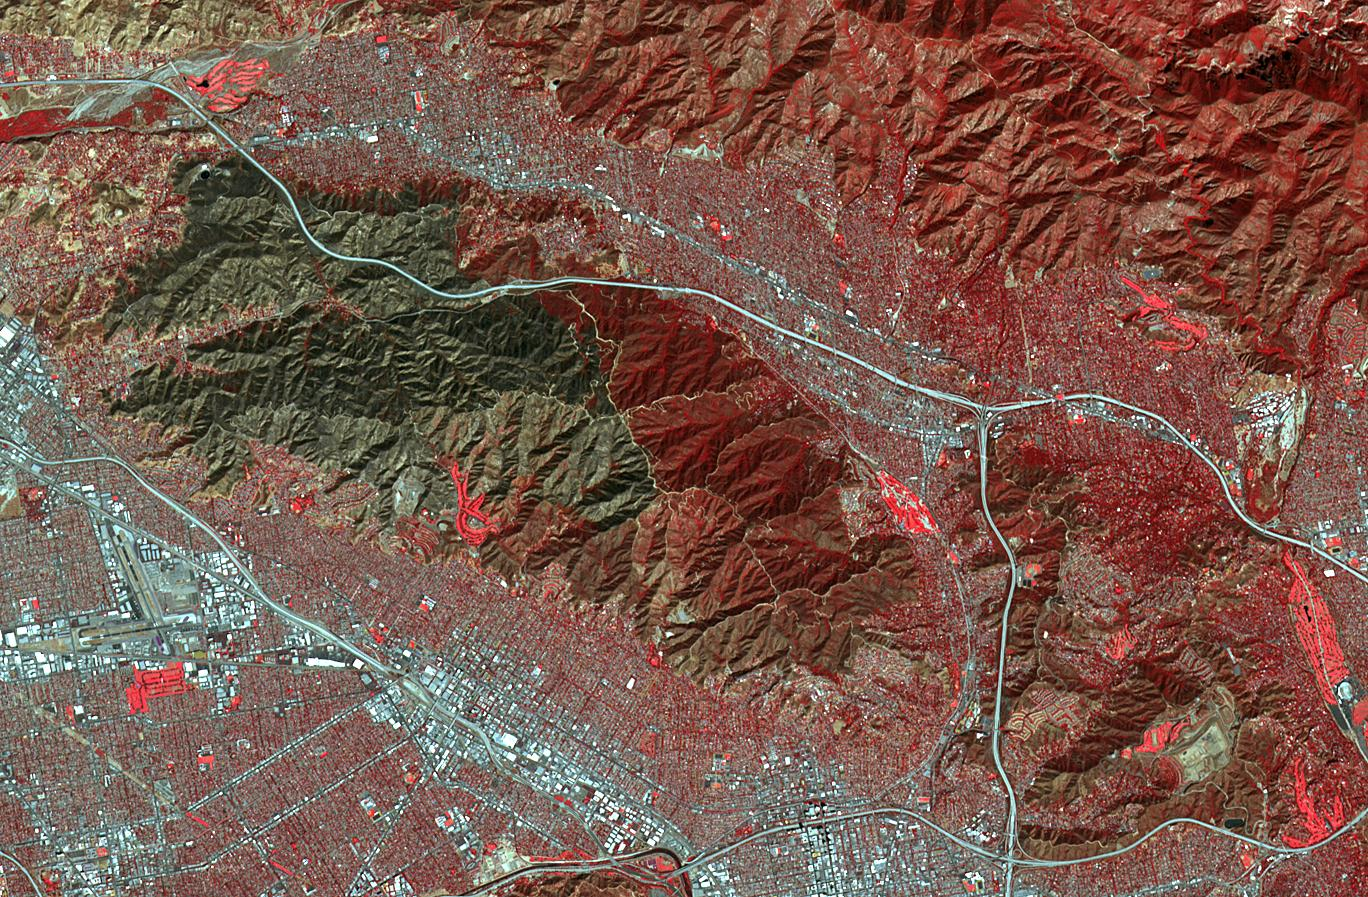 Scar from Los Angeles' Wildfires Imaged by NASA Satellite | NASA Satellite Map Of Los Angeles on satellite map of oklahoma, satellite map of north carolina, satellite map of queen creek, satellite map of oahu hawaii, satellite map of vermont, satellite map of colorado river, satellite map of new york state, satellite map of united states, satellite map of key west, satellite map of new mexico, satellite map of la paz mexico, satellite map of flagstaff, satellite map of chesapeake bay, satellite map of cabo san lucas, satellite map of las vegas strip, satellite map of abu dhabi, satellite map of east coast, satellite map of the us, satellite map of disney world, satellite map of staten island,